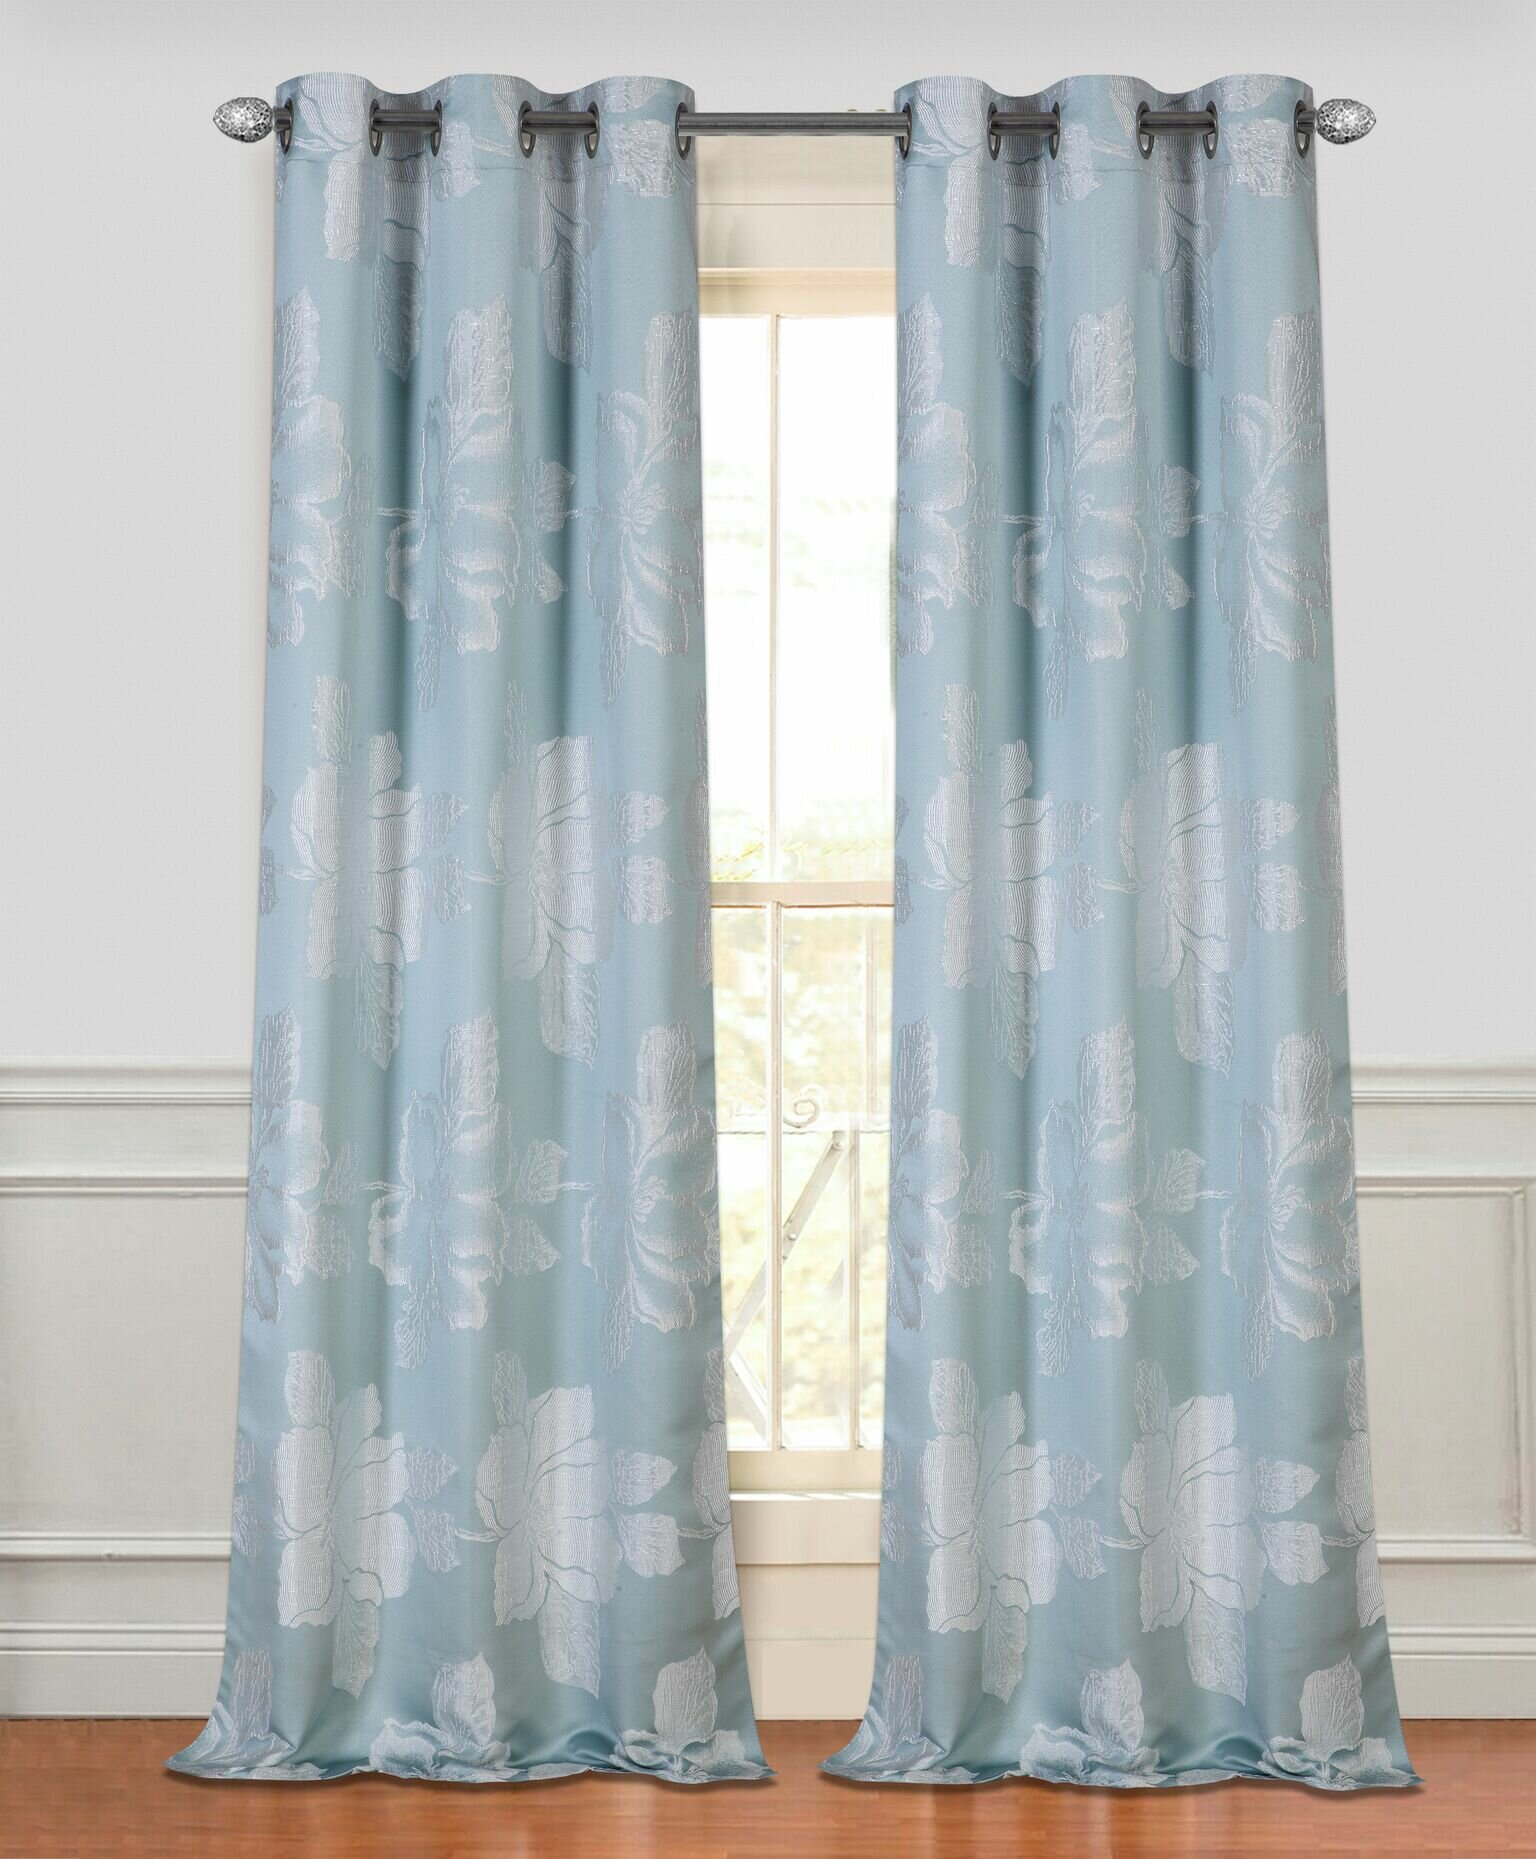 Dainty Home Park Floral Semi Sheer Grommet Curtain Panels & Reviews